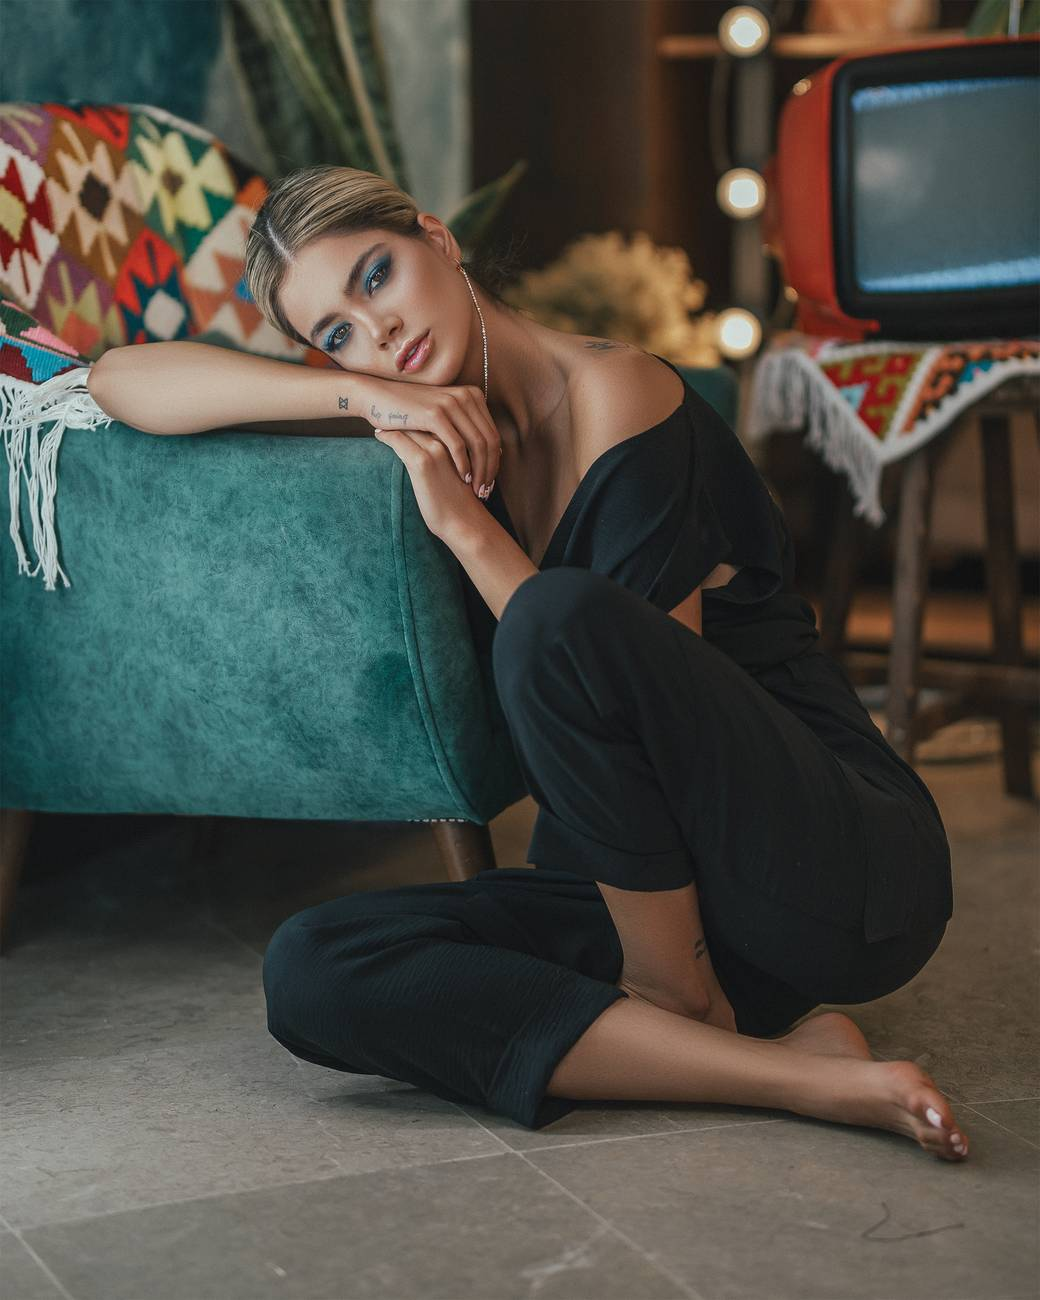 attractive woman sitting on floor in room